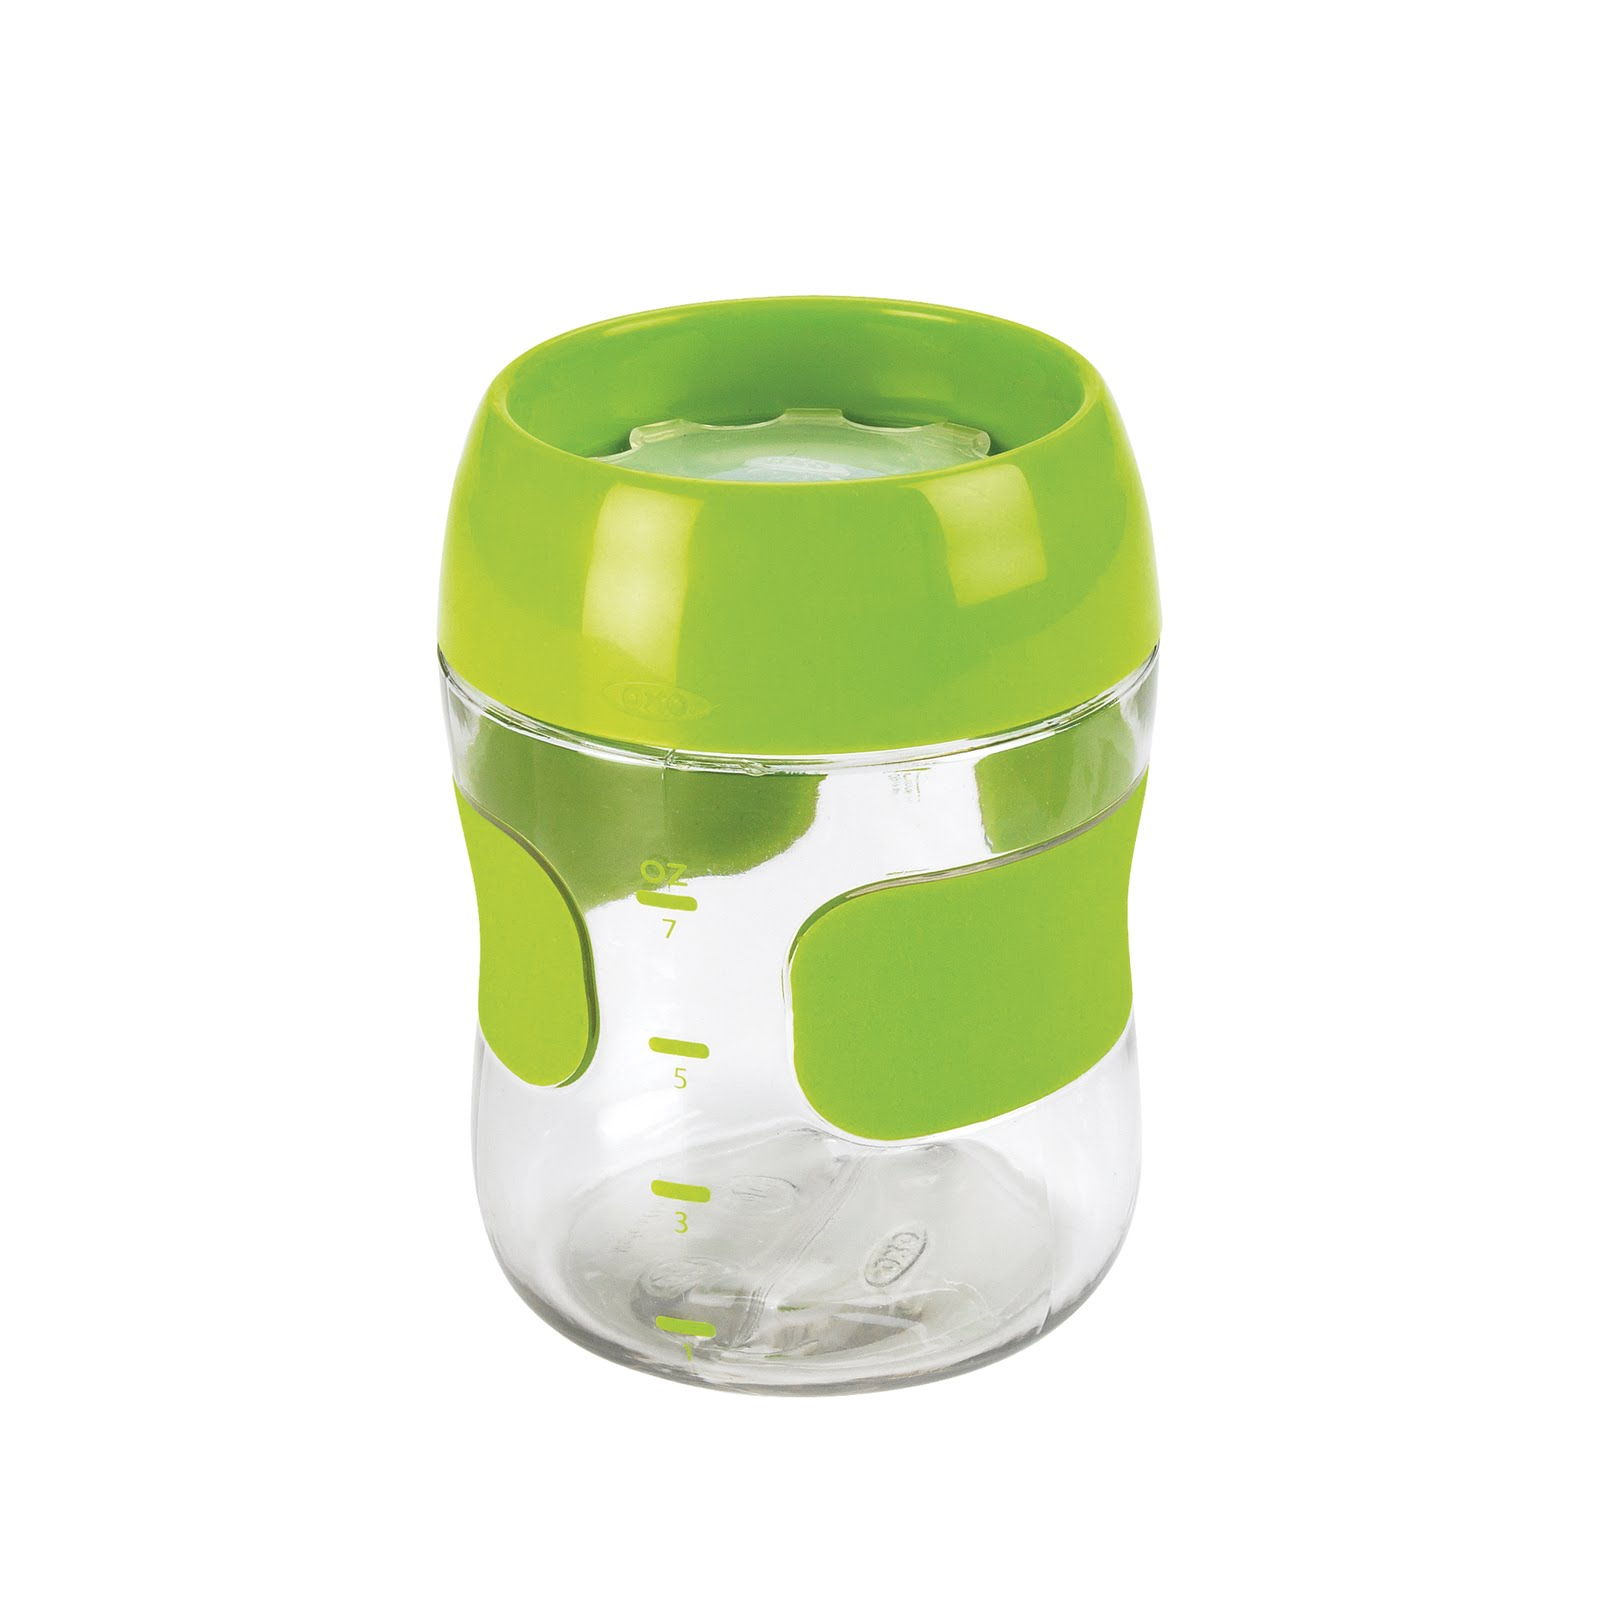 From small sippy cups, to larger straw cups and bigger insulated cups, the Tommee Tippee baby cups collection has something for everyone. Buy online now.